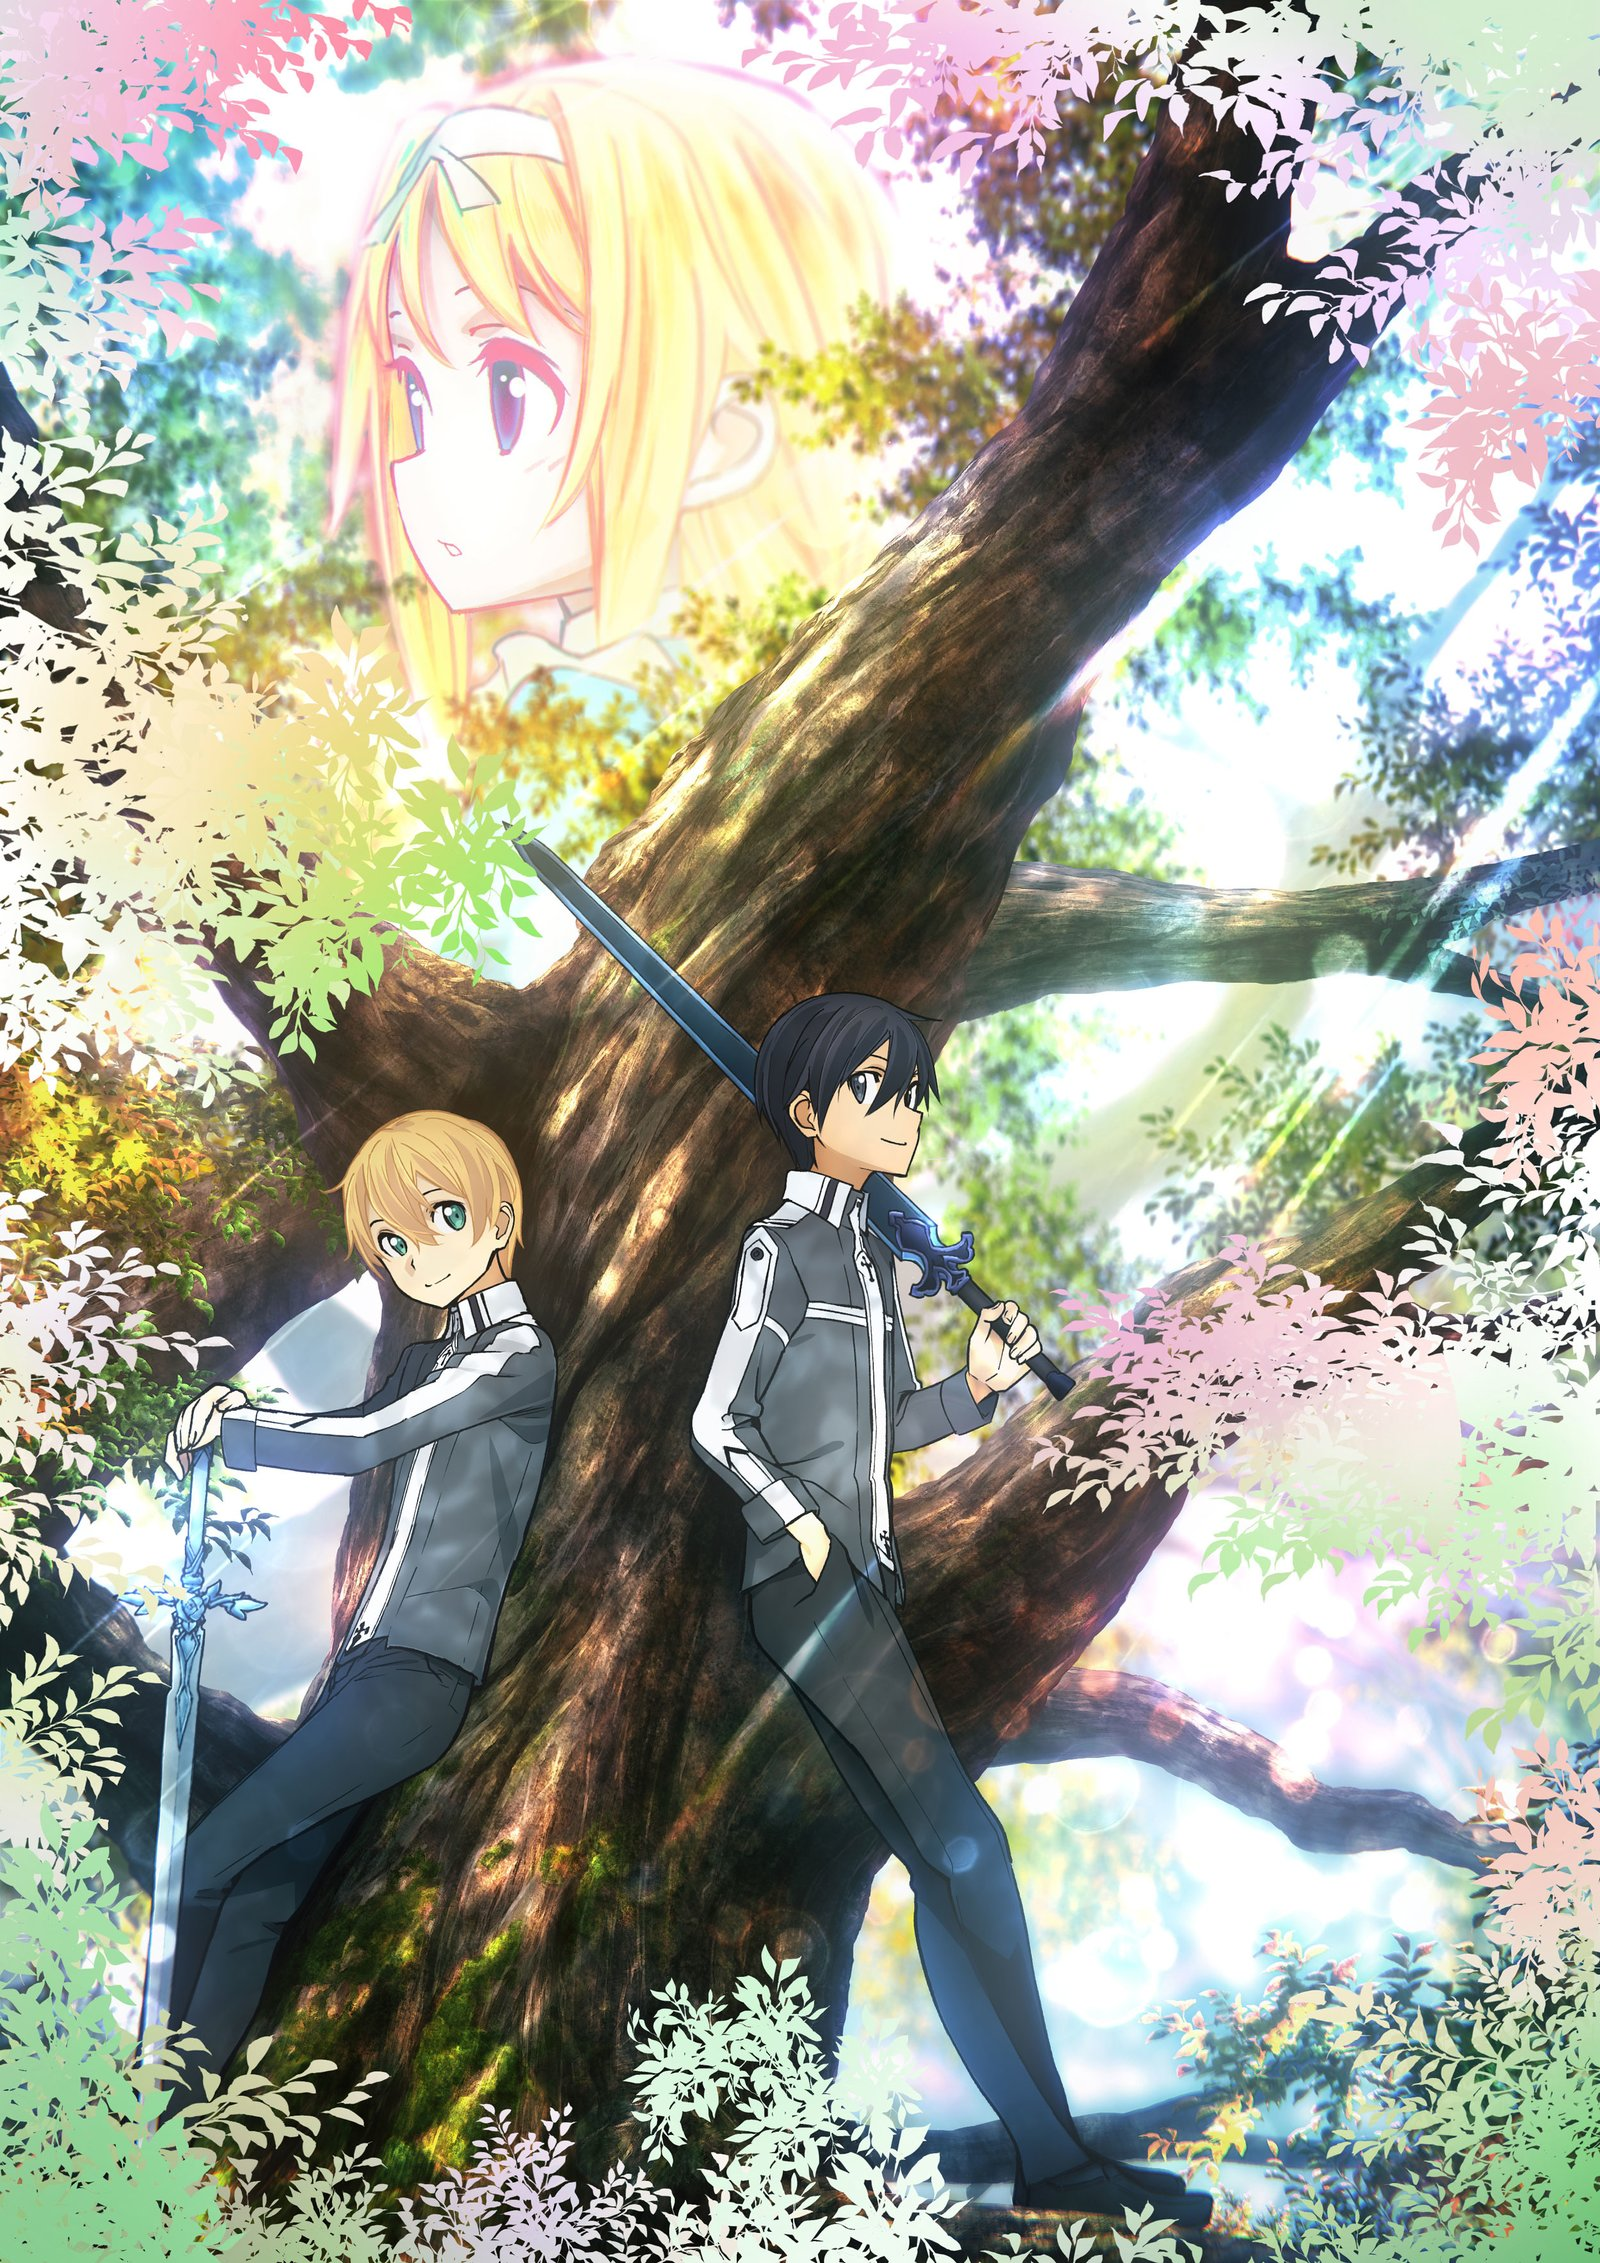 Sword art online season 3 confirms october broadcast date